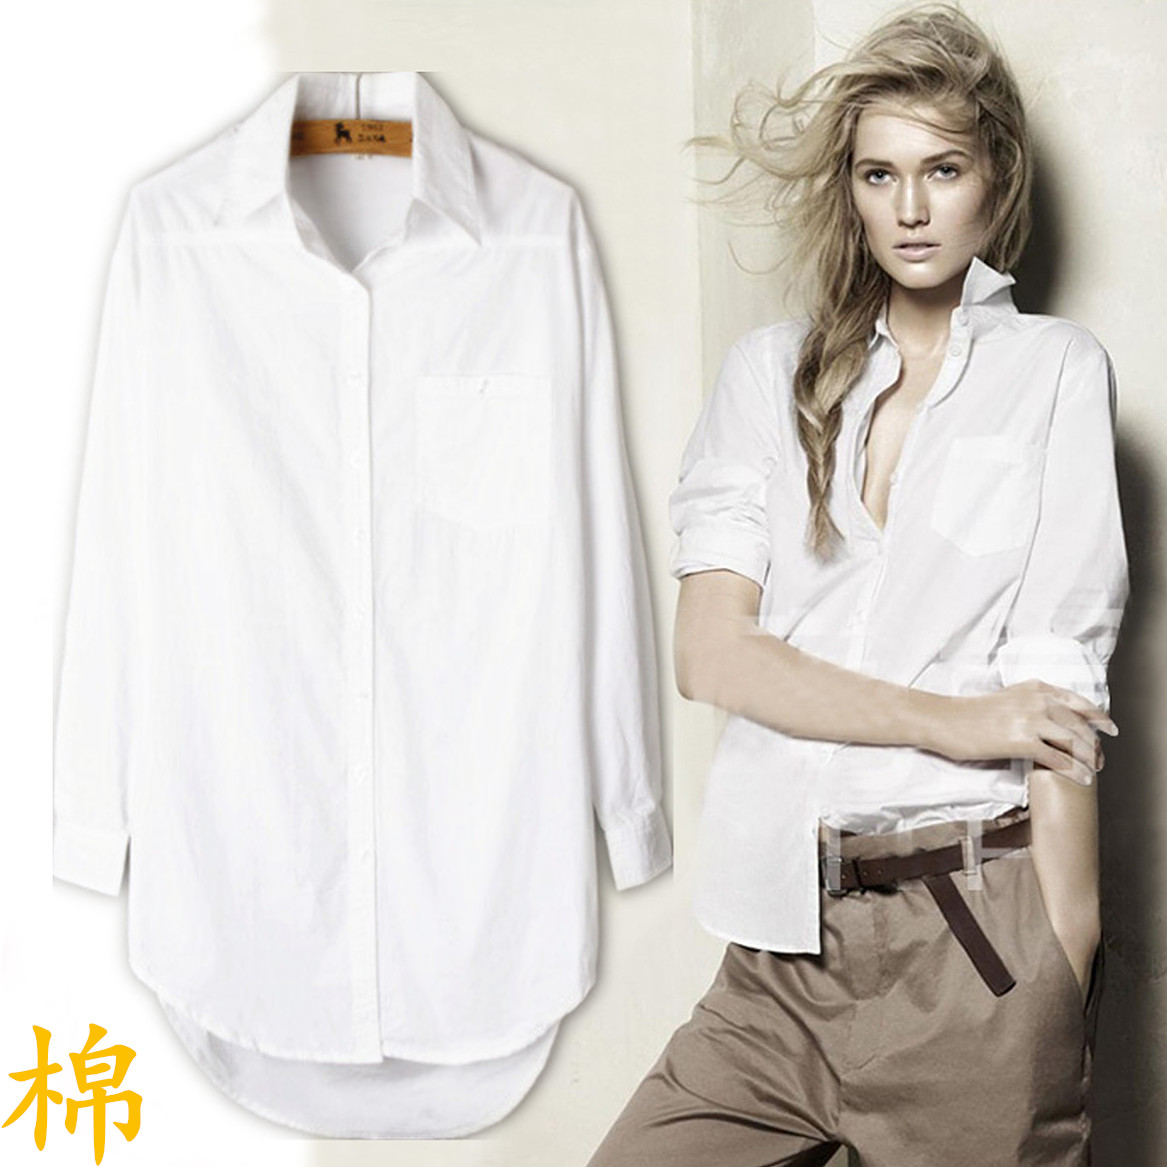 d307ec5634 Buy cotton sleepwear white shirt for women and get free shipping on  AliExpress.com